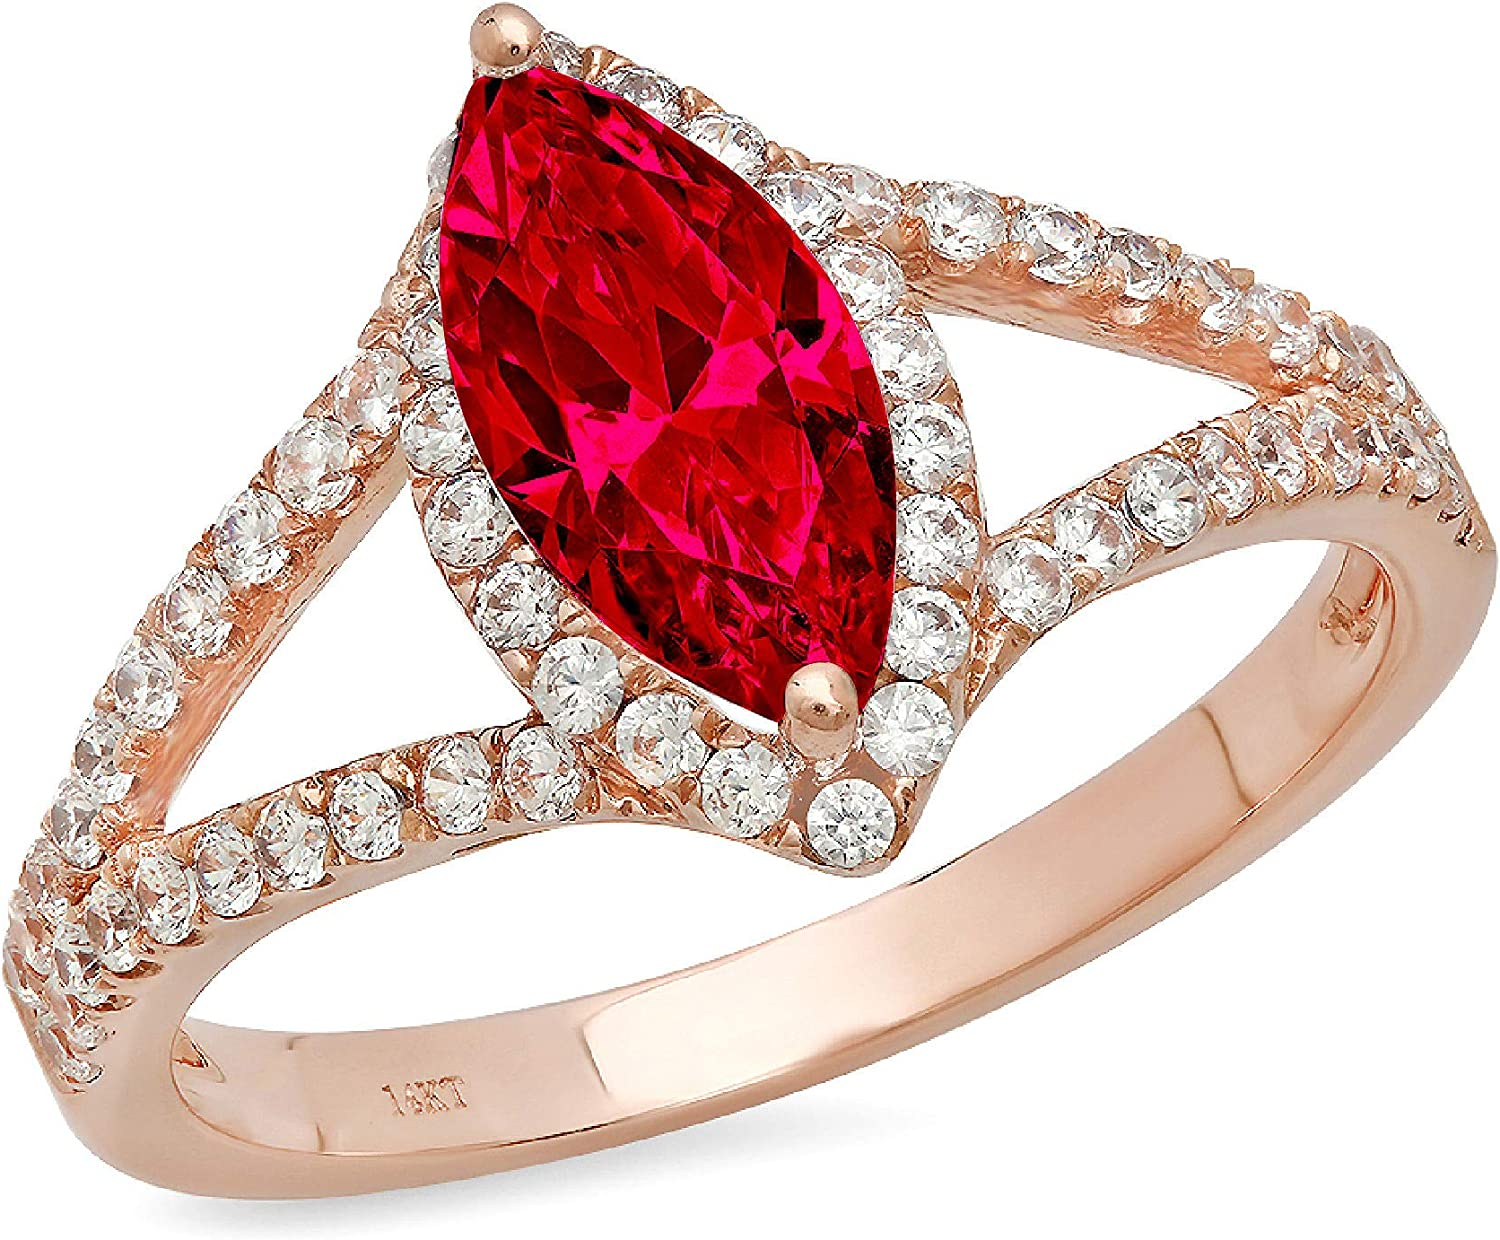 1.20 ct Marquise Cut Solitaire with Accent split shank Halo Flawless Classic Pink Tourmaline Ideal Engagement Promise Statement Anniversary Bridal Wedding Designer Ring 18k Rose Gold